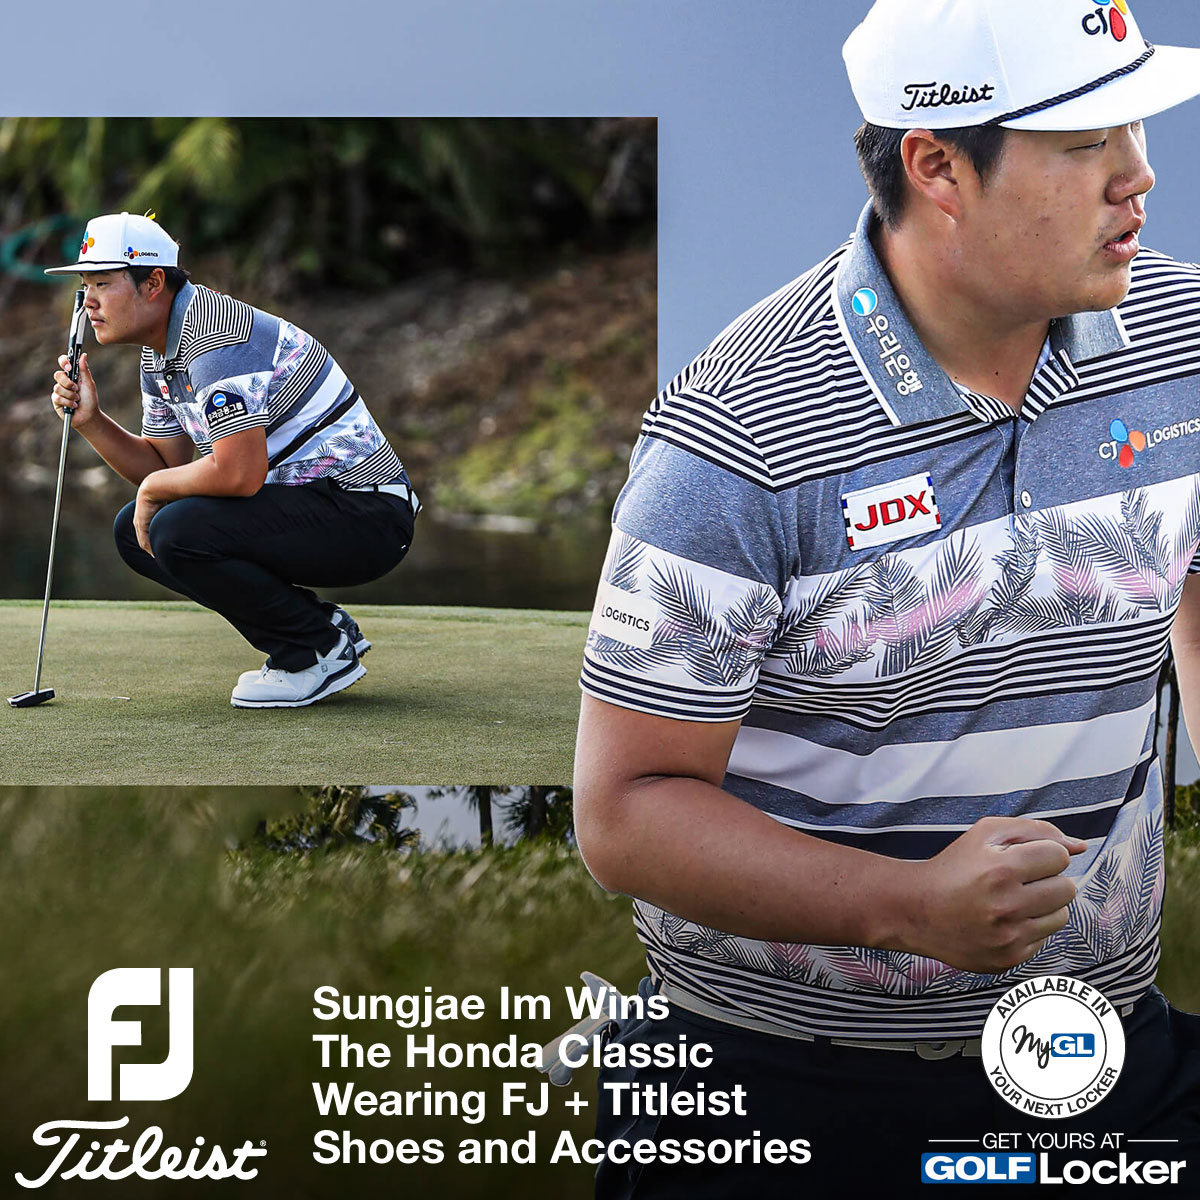 Sungjae Im Wins the Honda Classic Wearing FJ and Titleist Golf Shoes and Accessories